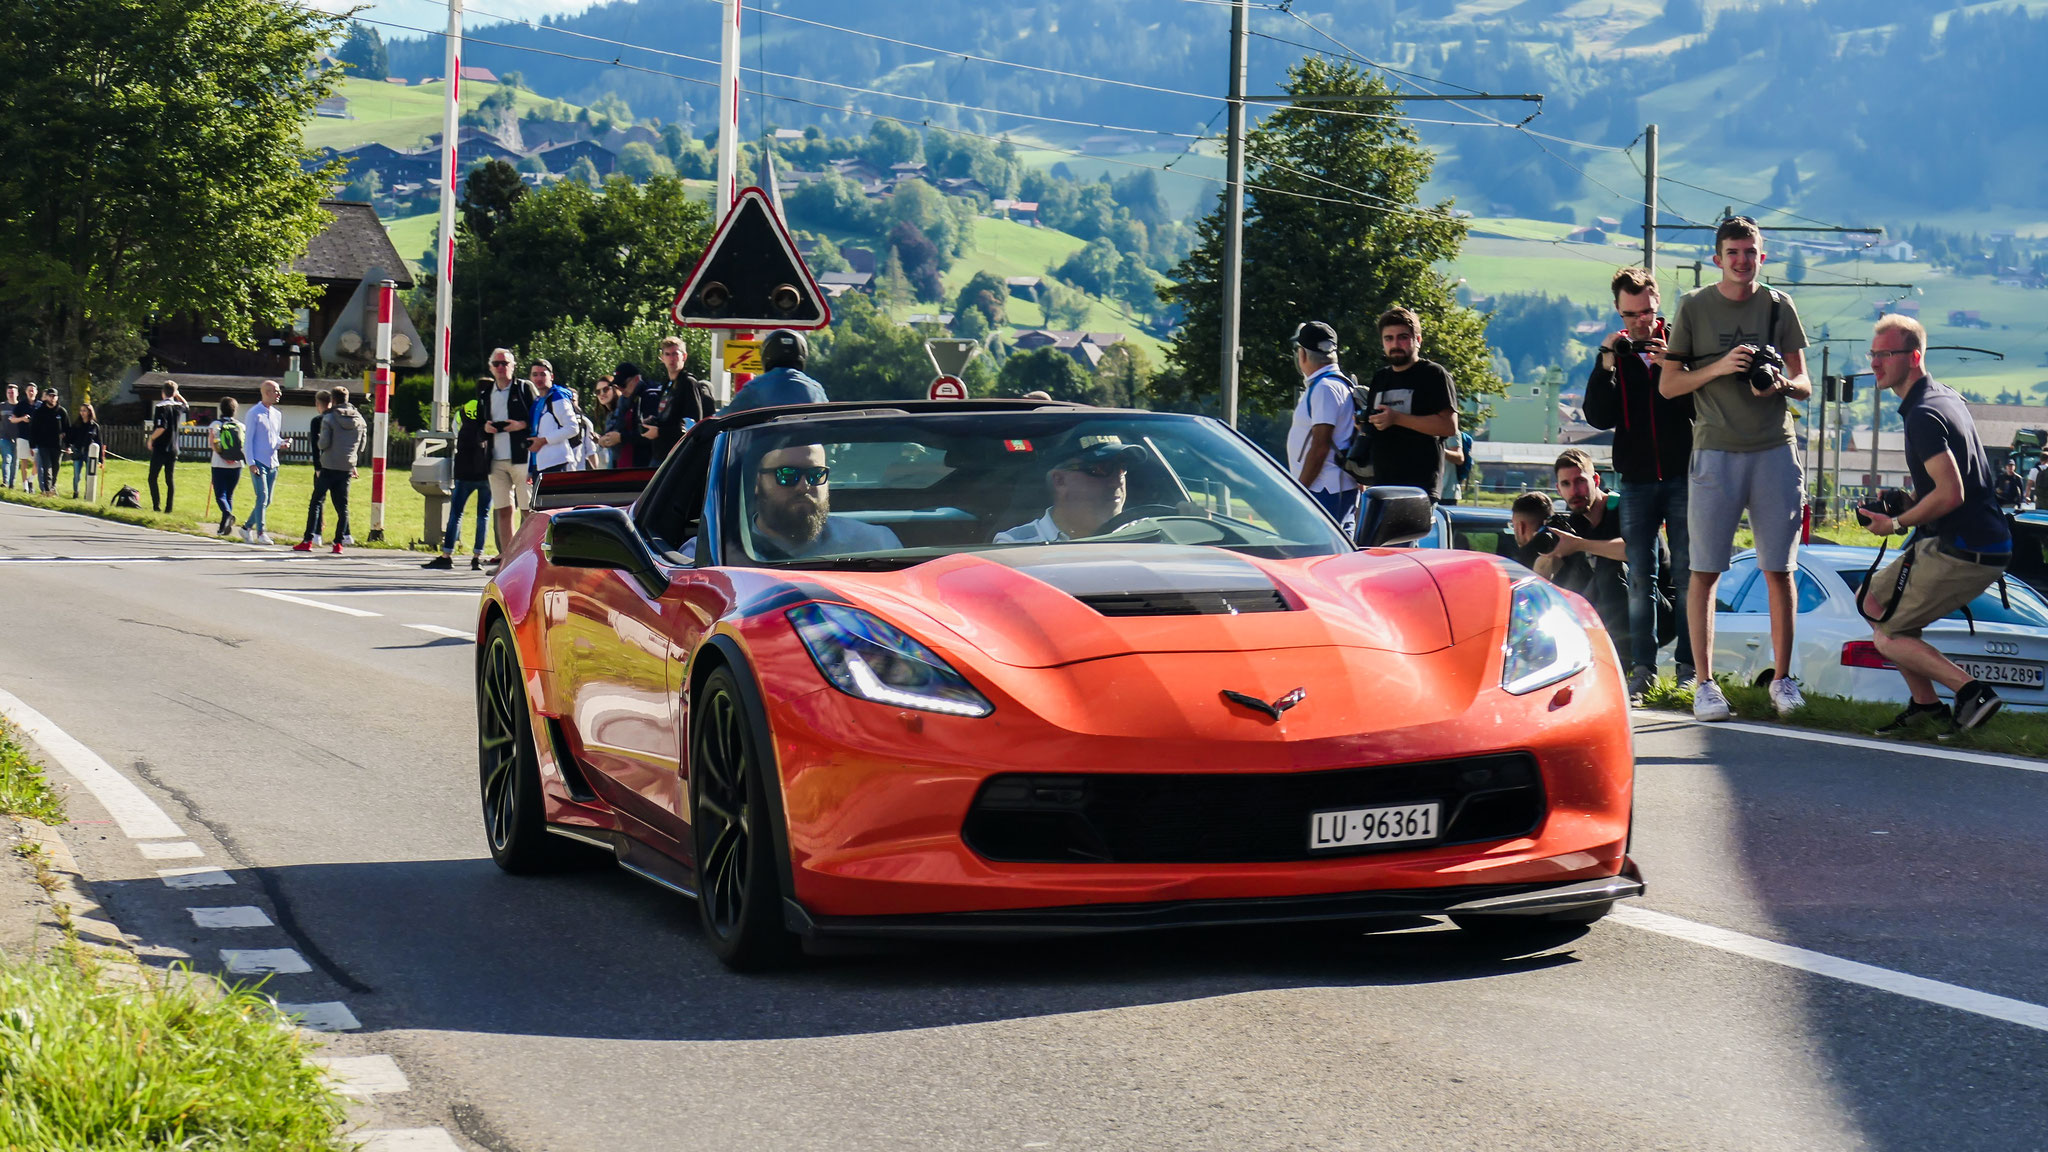 Chevrolet Corvette C7 Grand Sport - LU-96361 (CH)